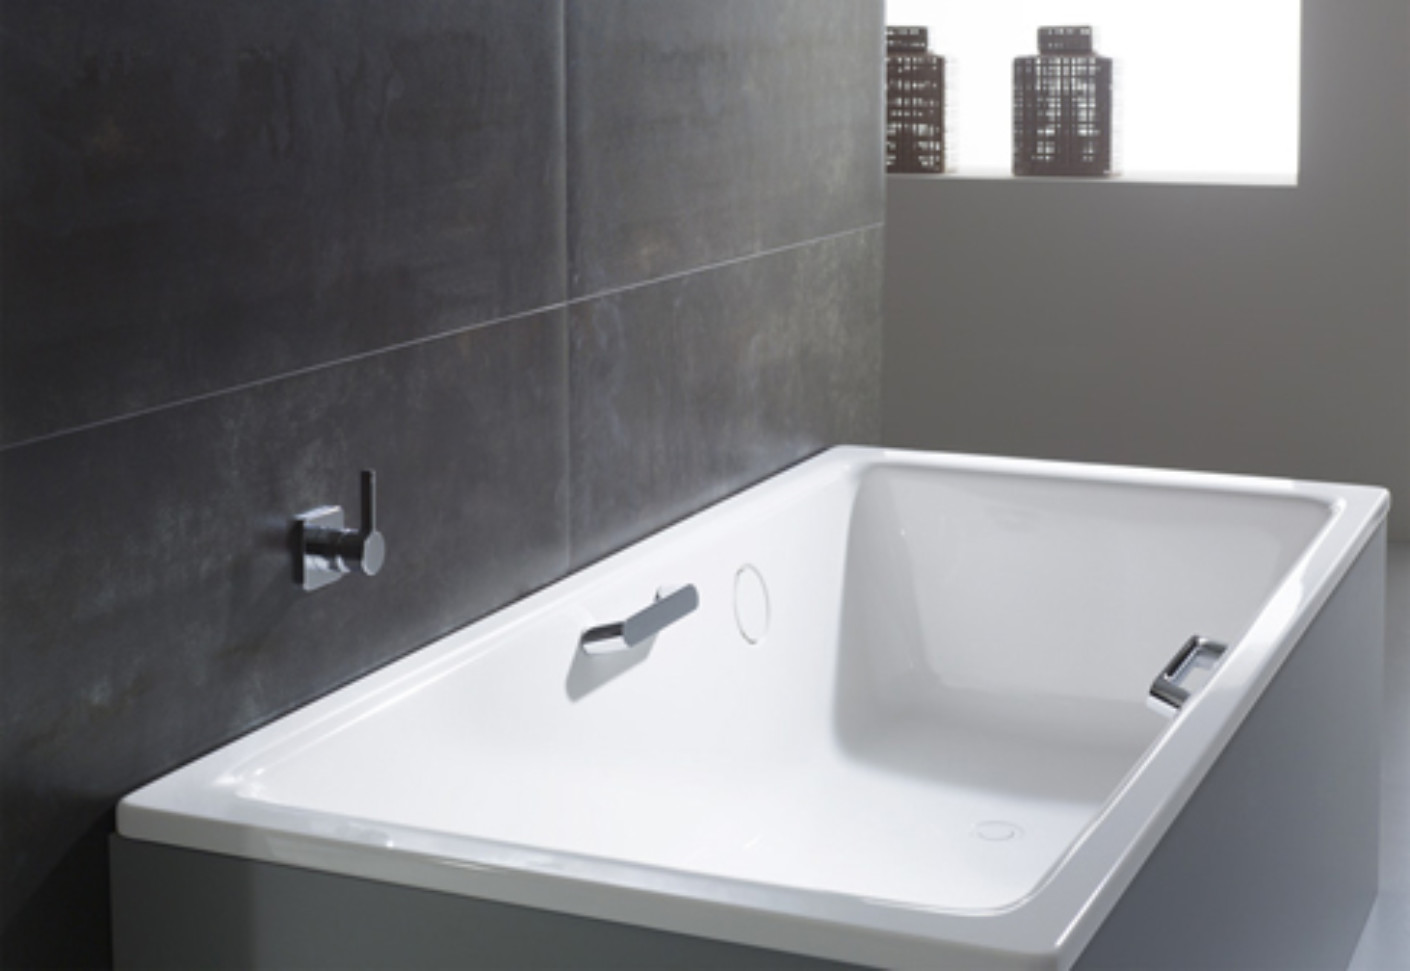 Kaldewei Ambiente bath handle noble purism ambiente by kaldewei stylepark